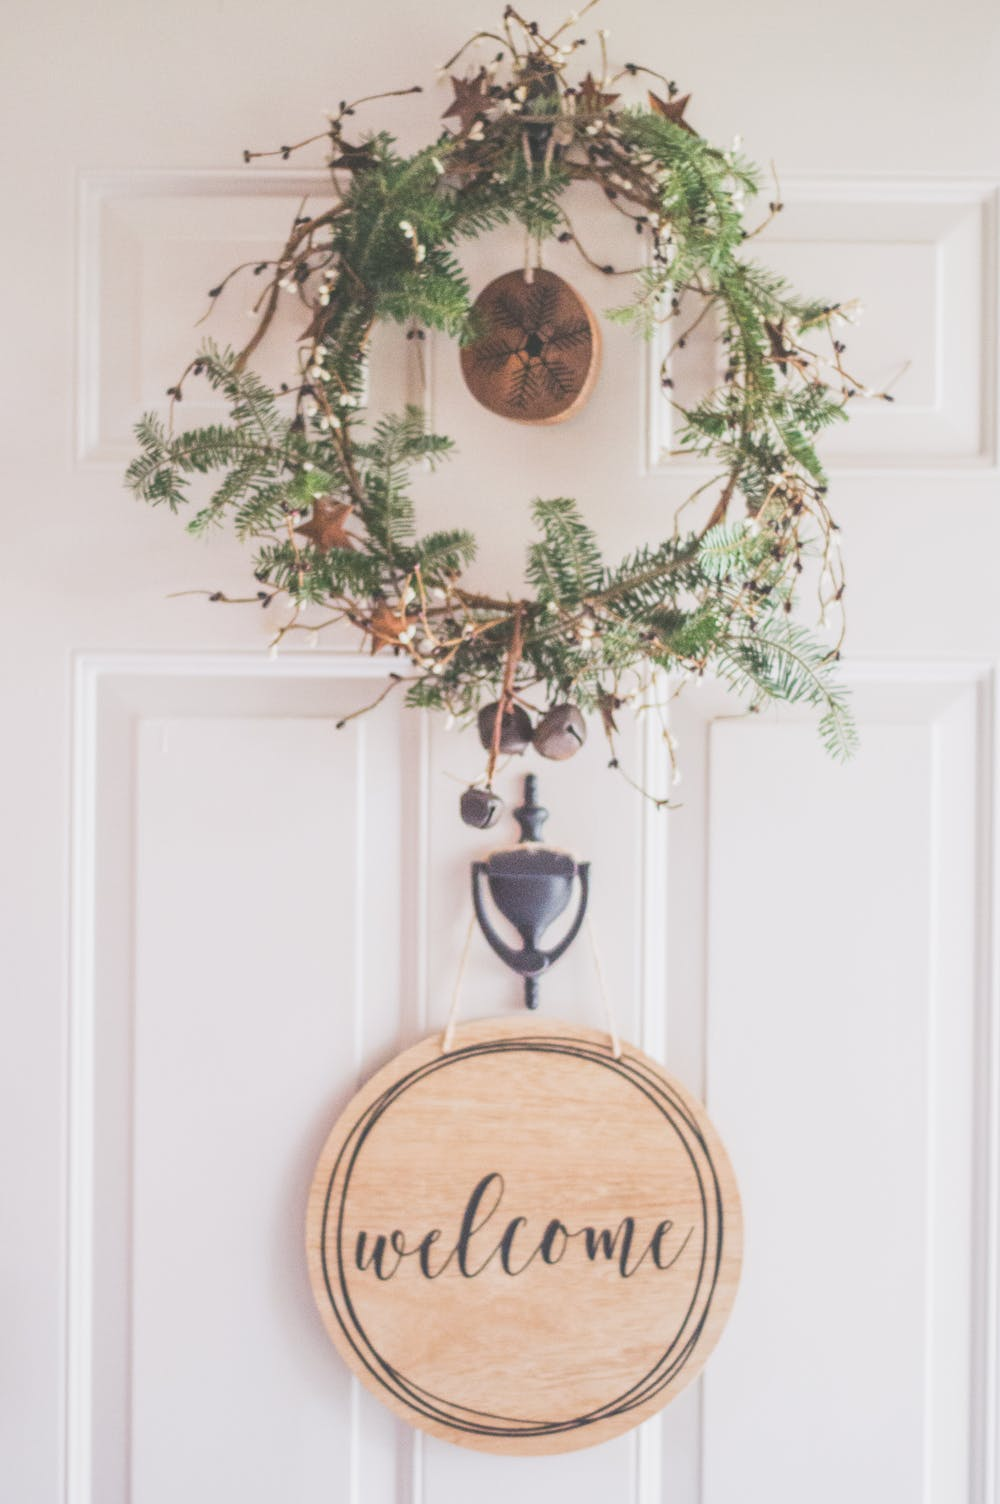 Decorate Your Door - Wreaths don't have to be just for Christmas! Adding a colorful, flower-filled wreath on your front door will add a pop of color to your home and make it appear more welcoming and seasonal.